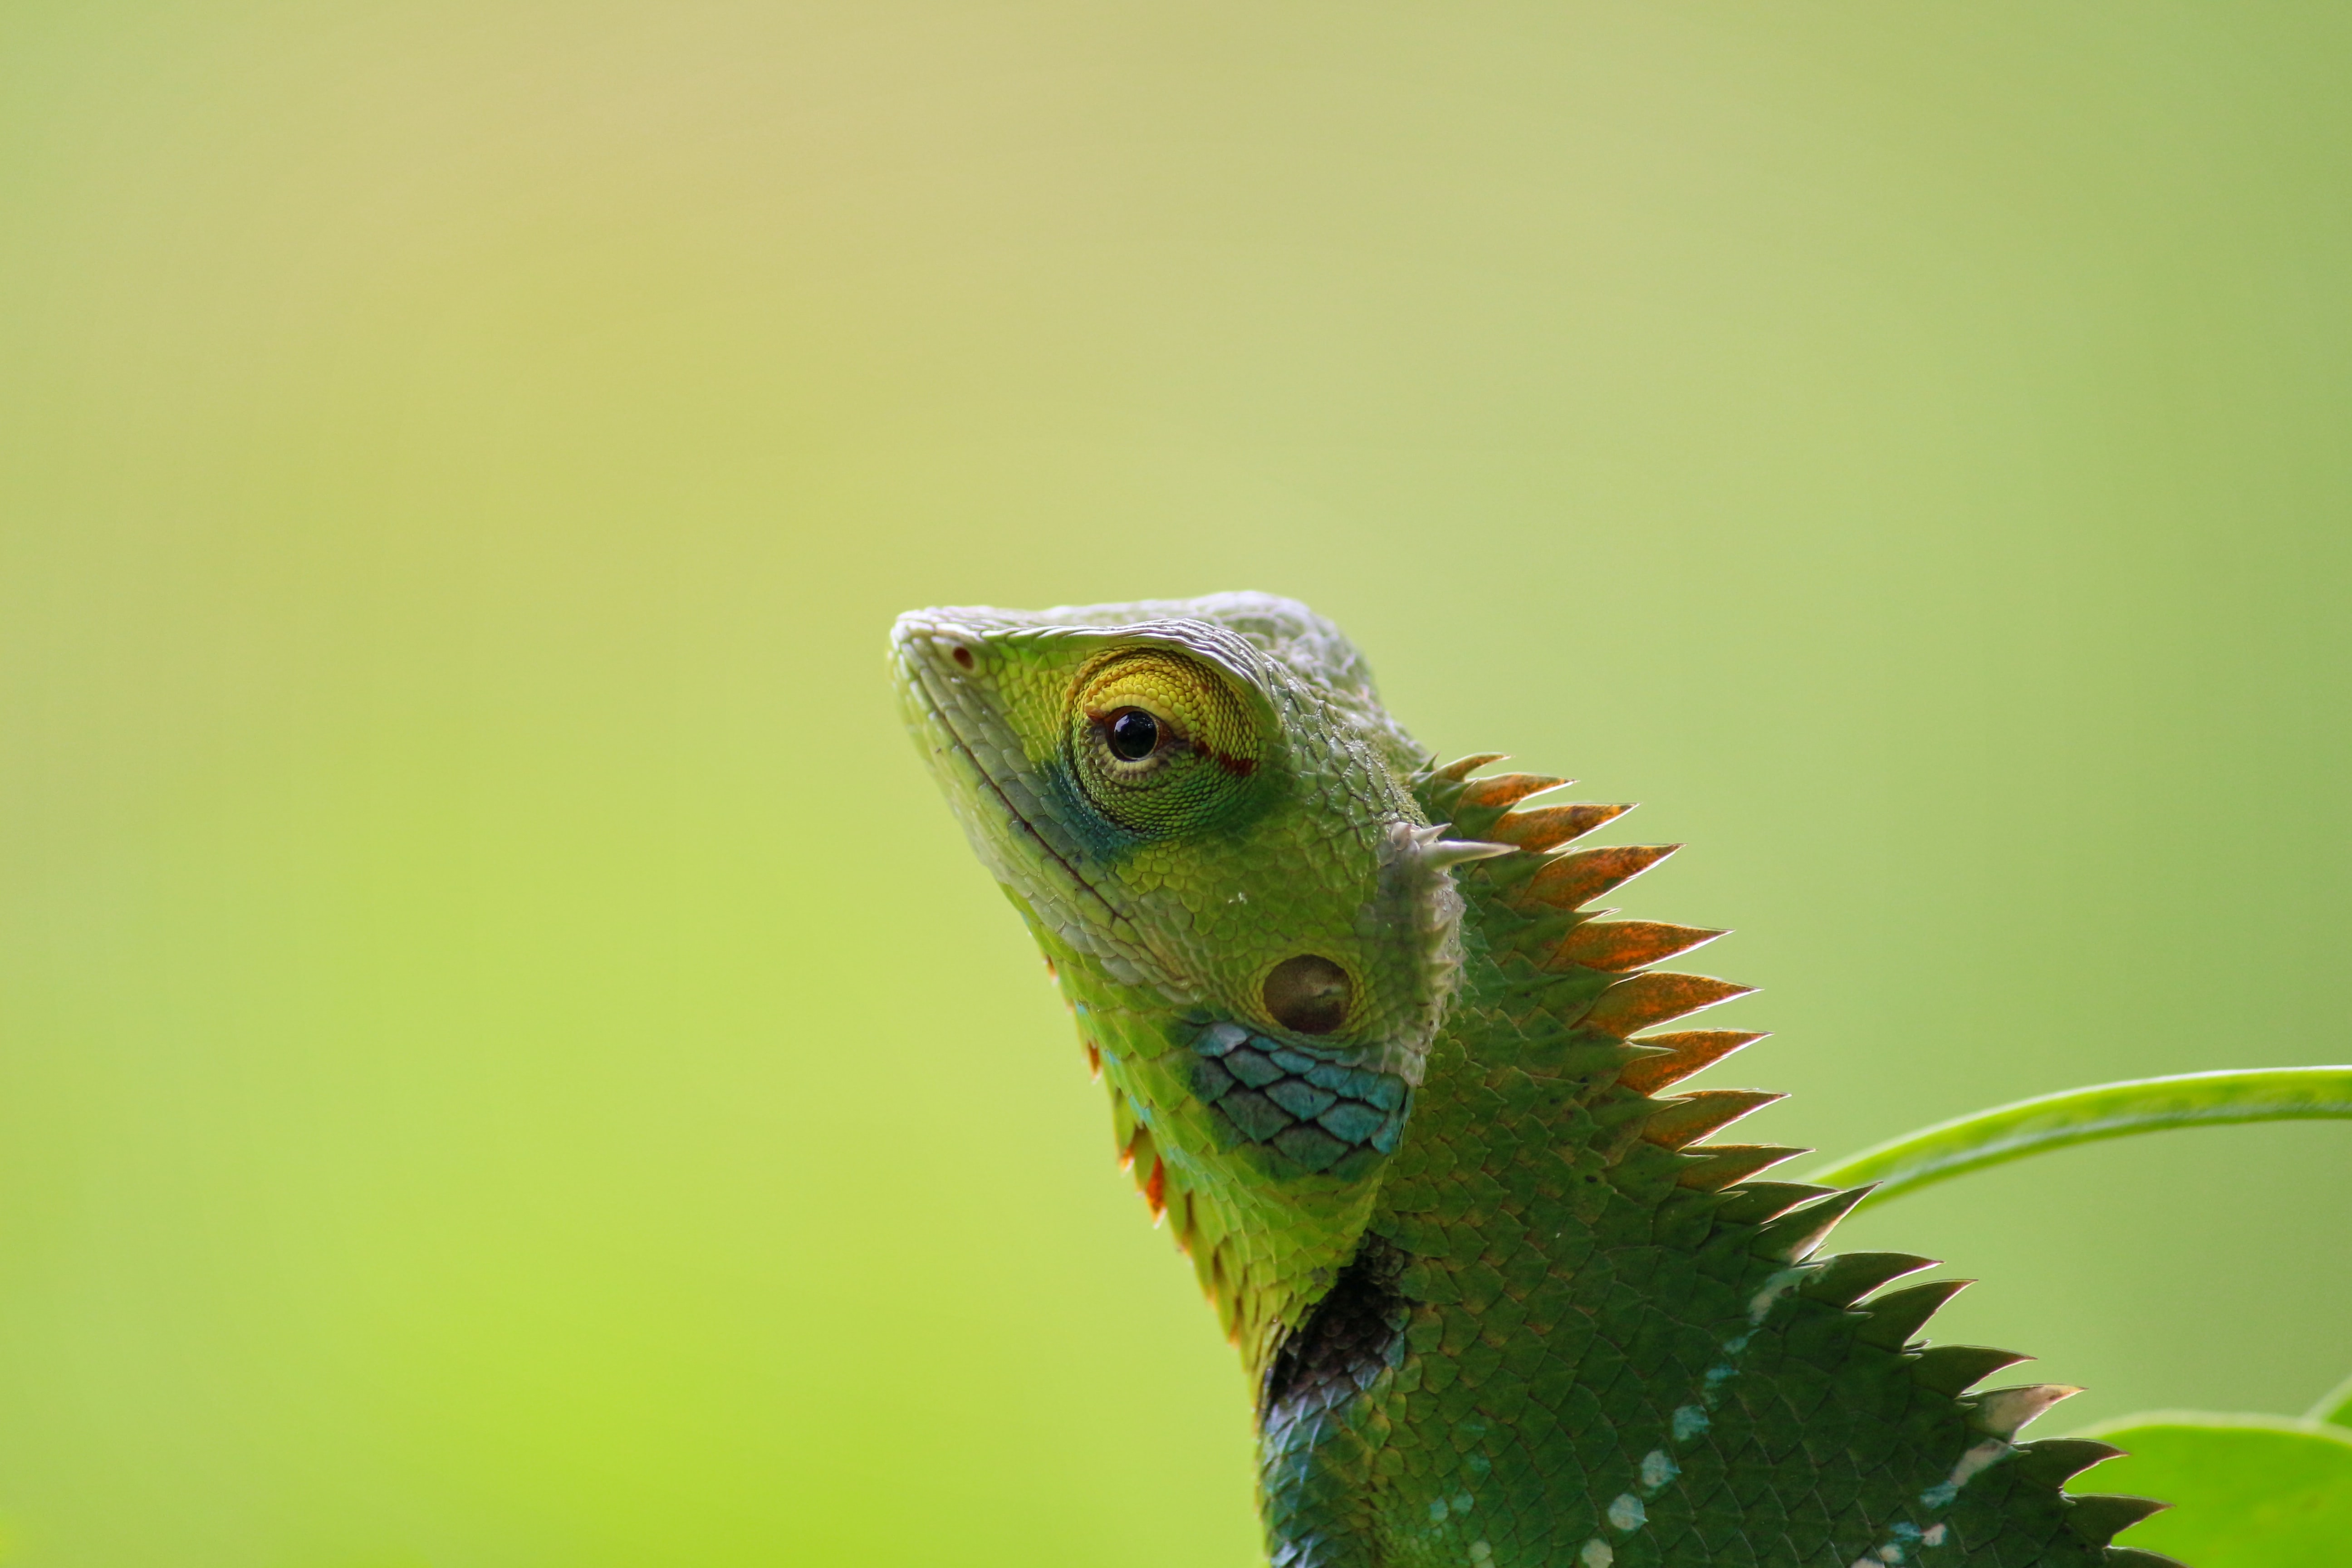 shallow focus photograpy of green iguana